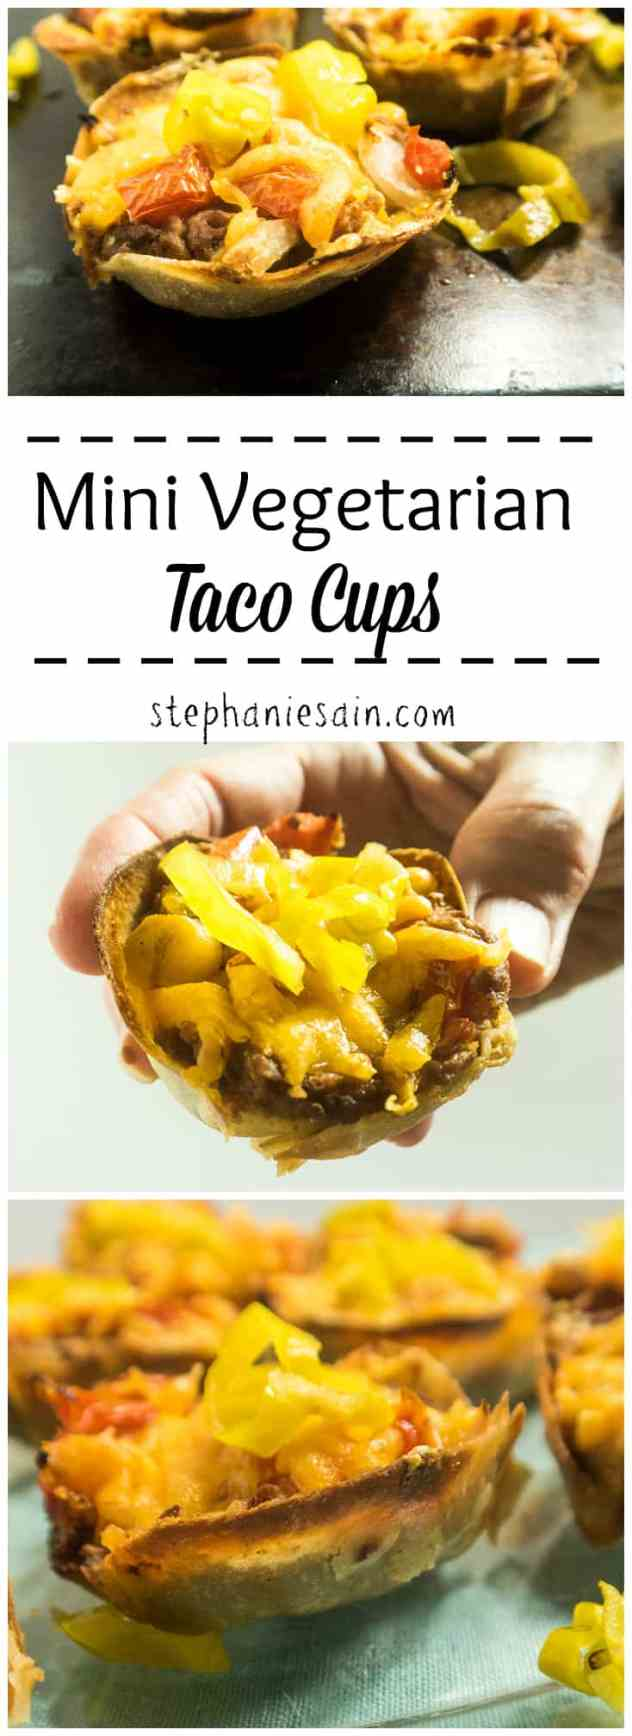 Mini Vegetarian Taco Cups are made in a muffin tin and filled with re-fried beans and then topped with your favorites. Portable, kid friendly. Gluten Free & Vegetarian.